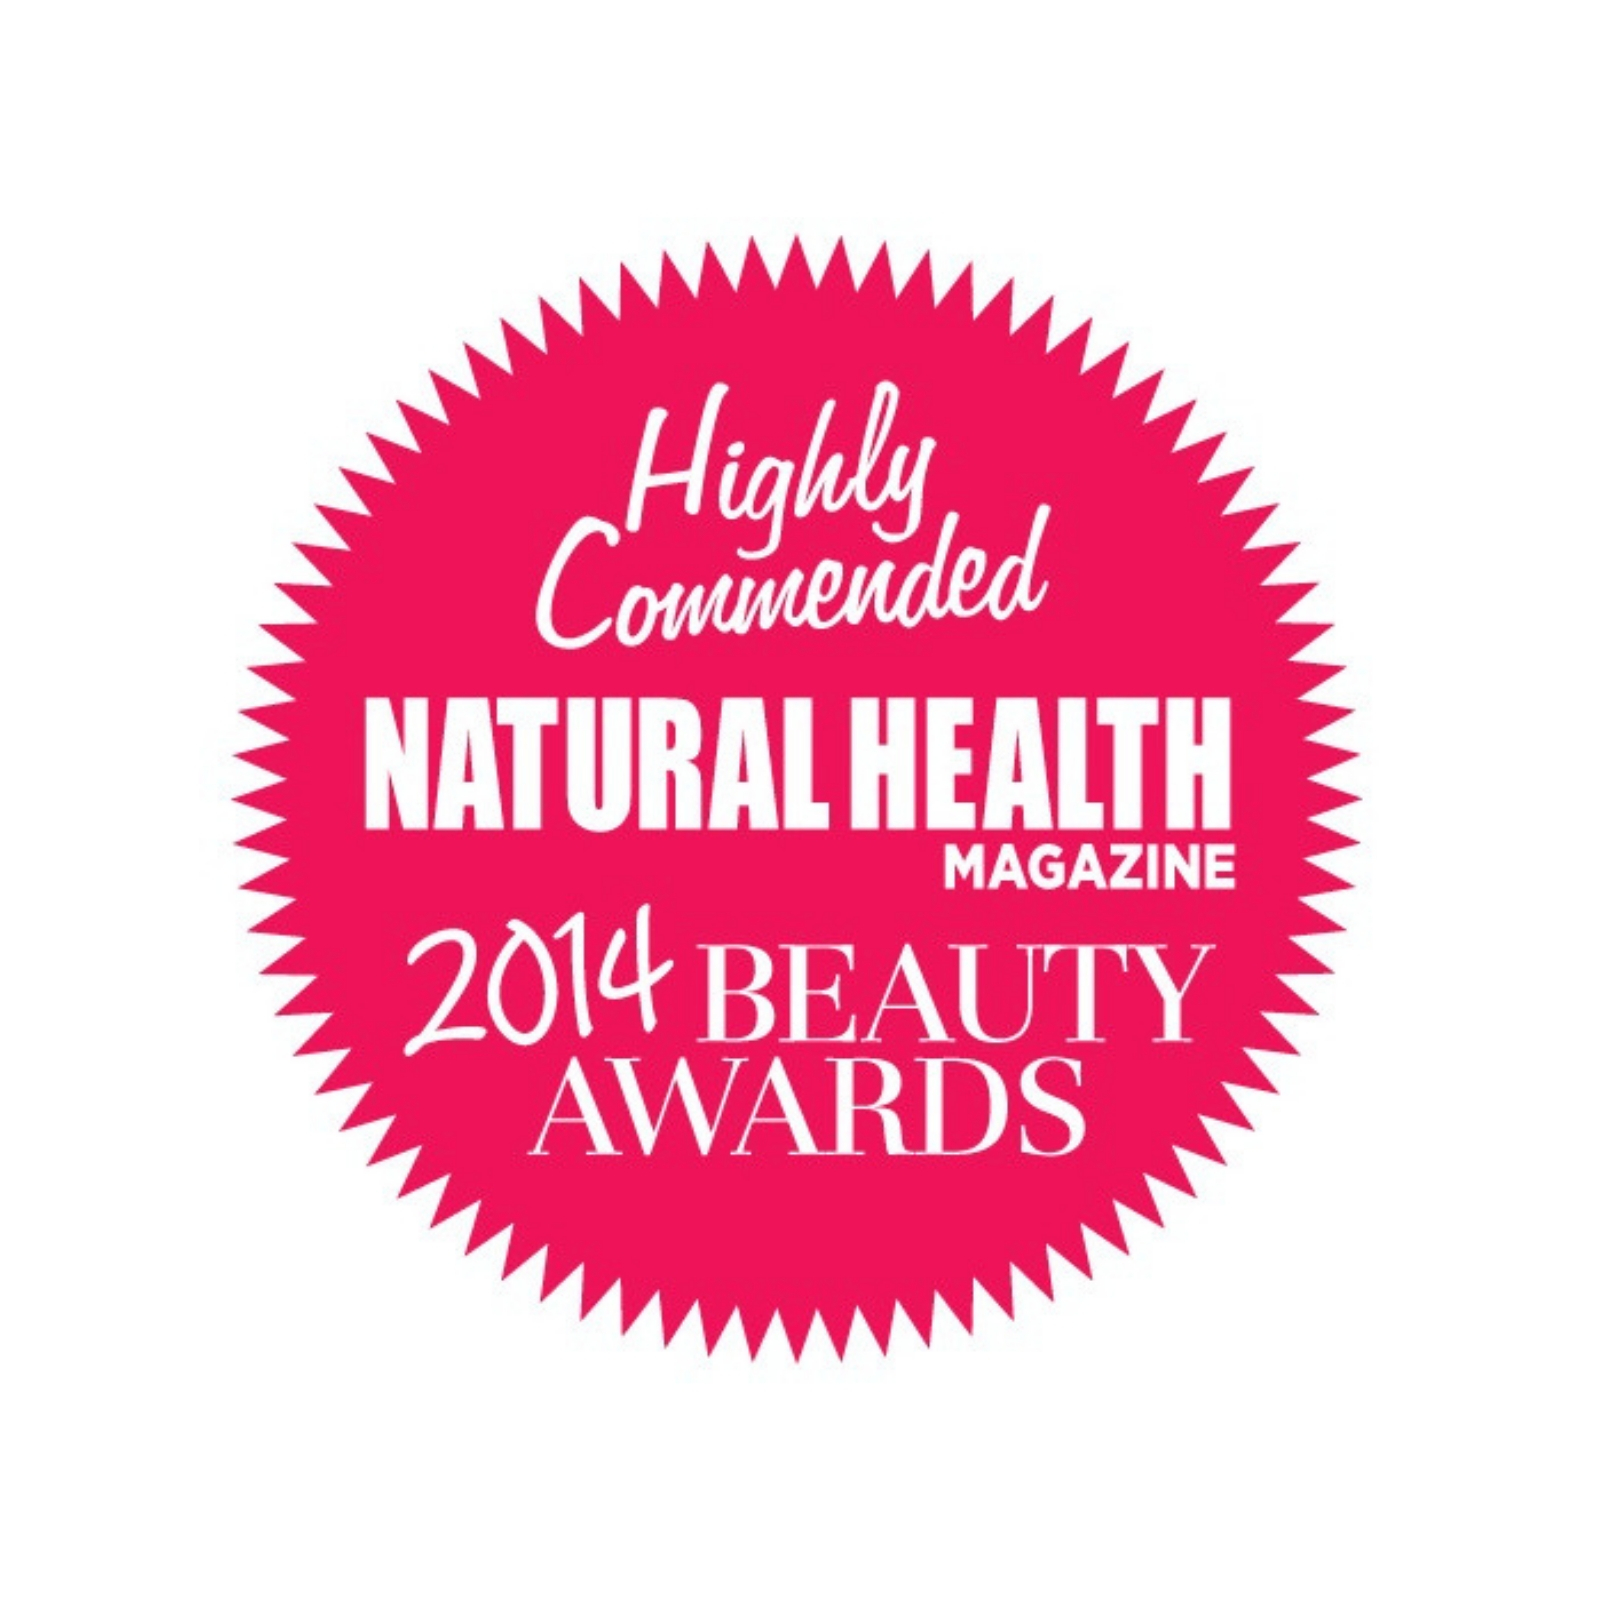 natural health mag highly commended logo